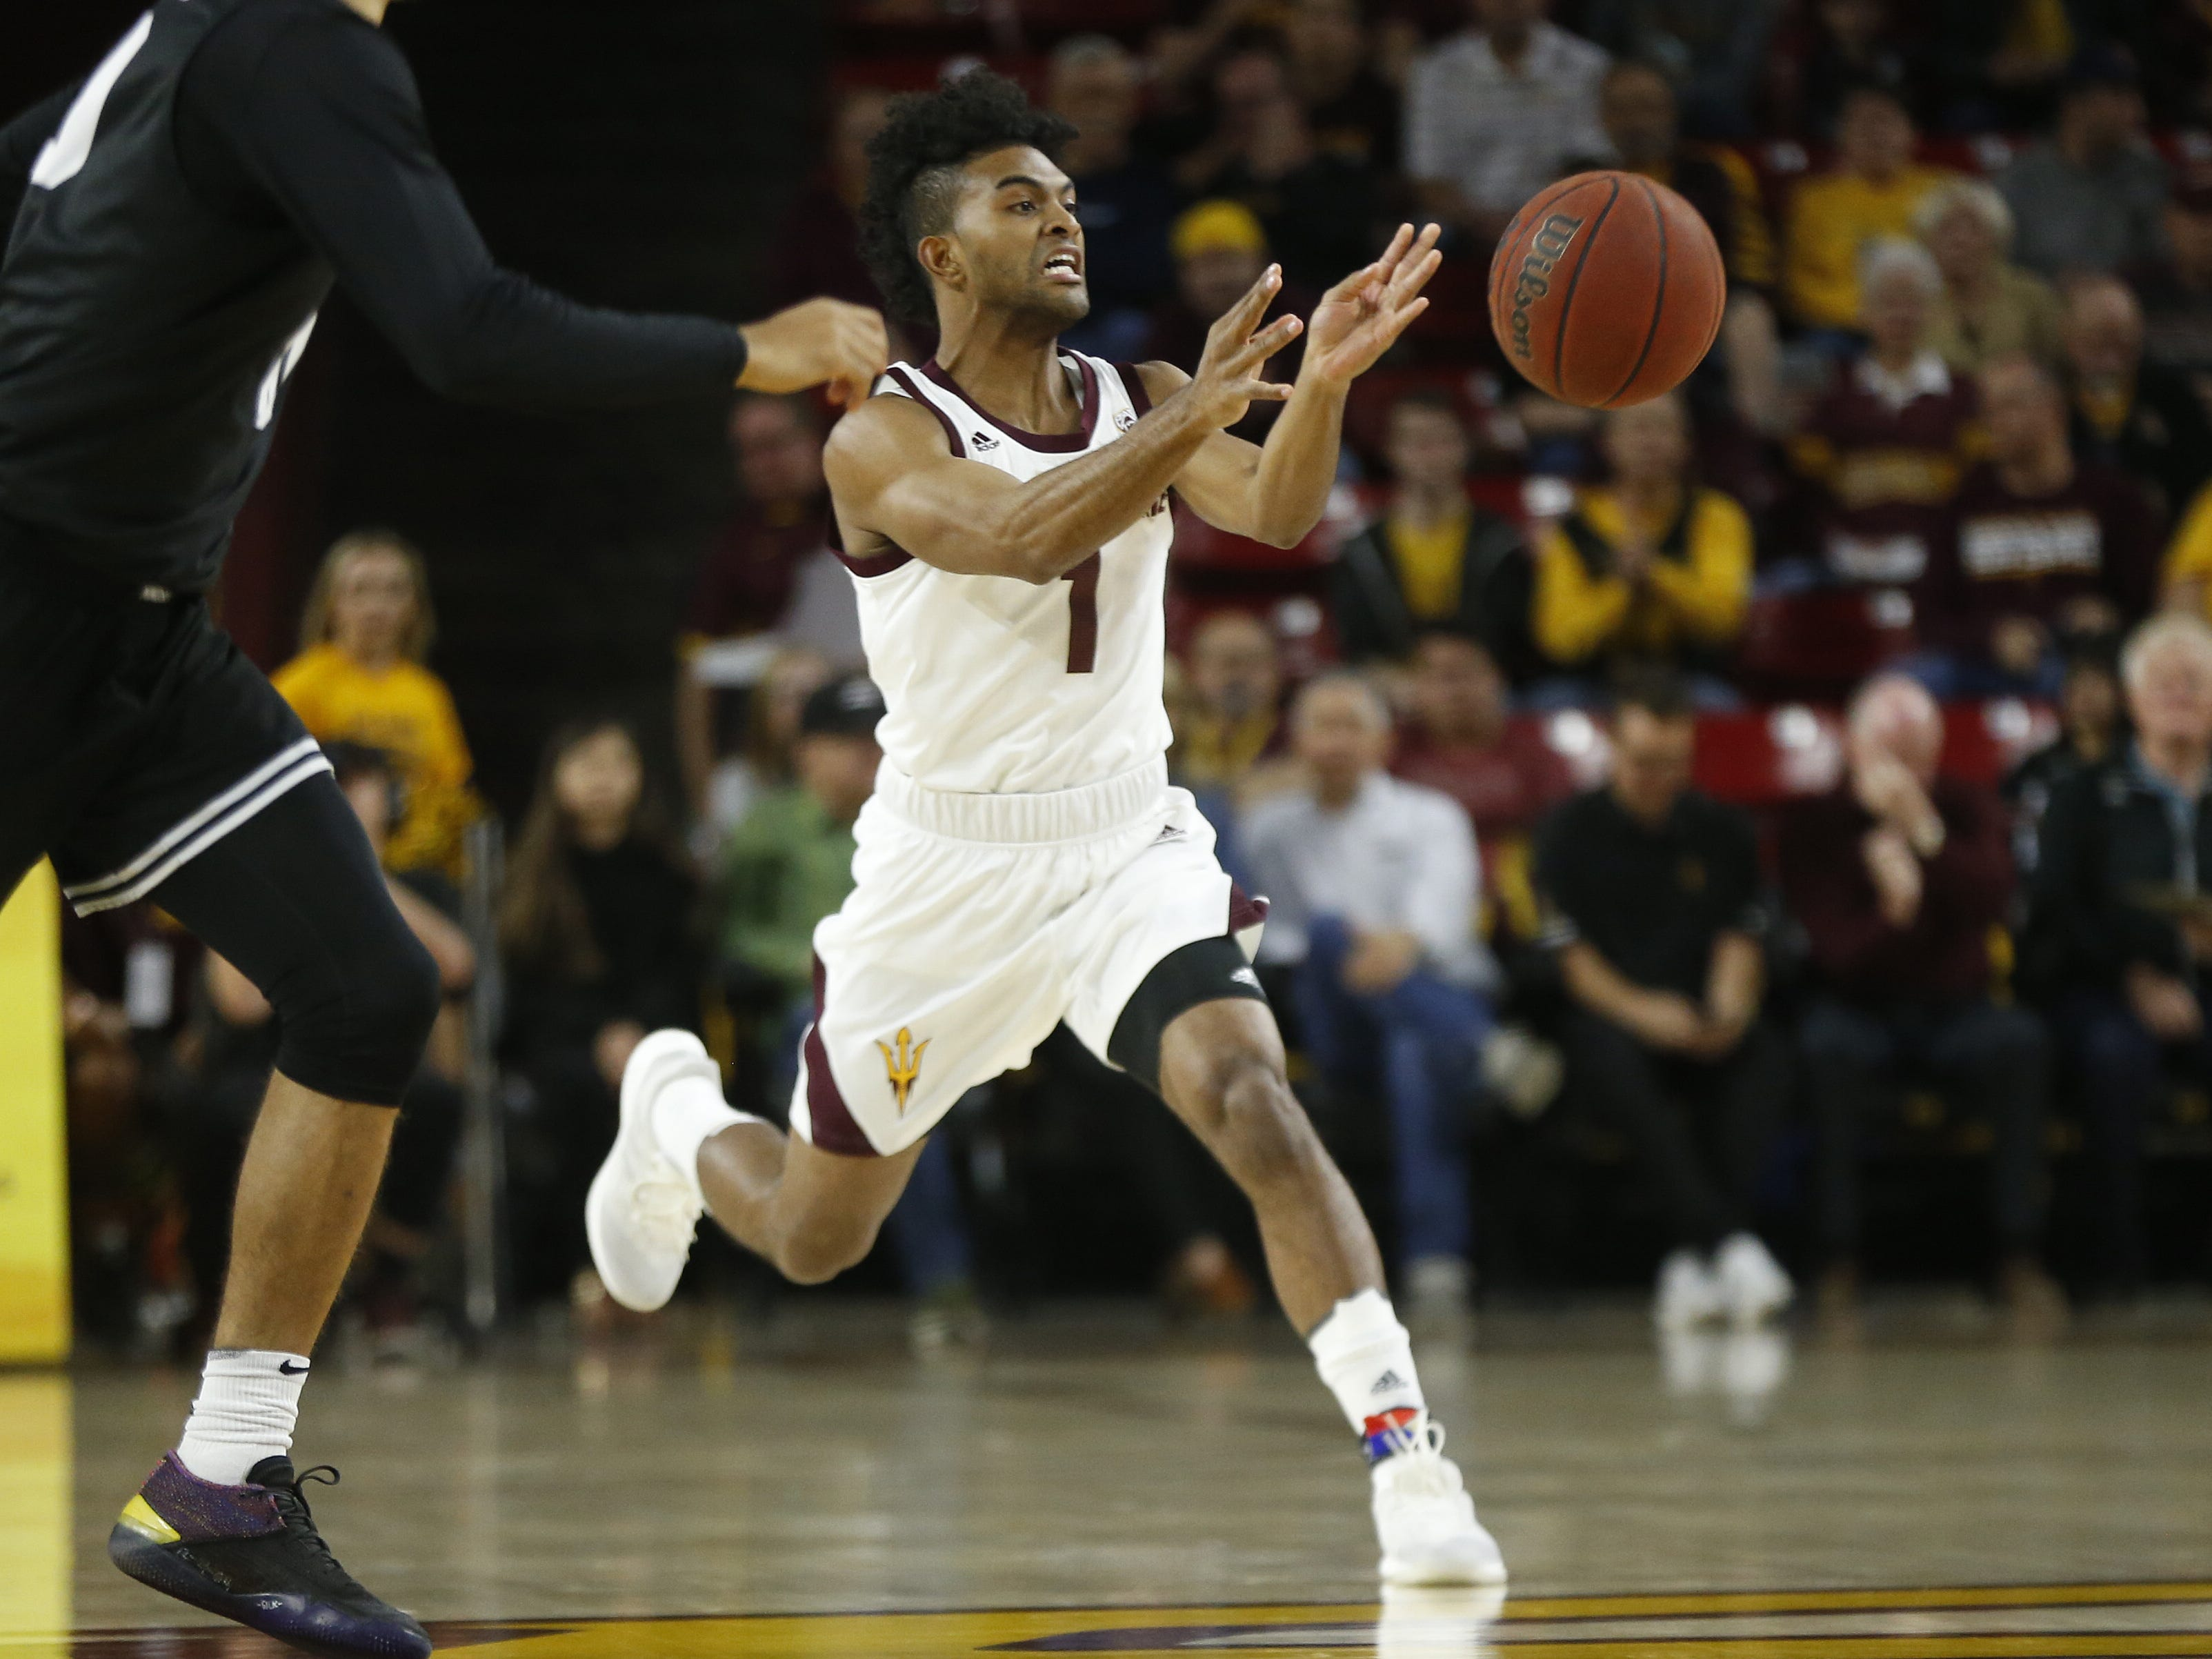 Arizona State's Remy Martin (1) passes the ball to a teammate against Long Beach State during the first half at Wells Fargo Arena in Tempe, Ariz. on November 12, 2018.